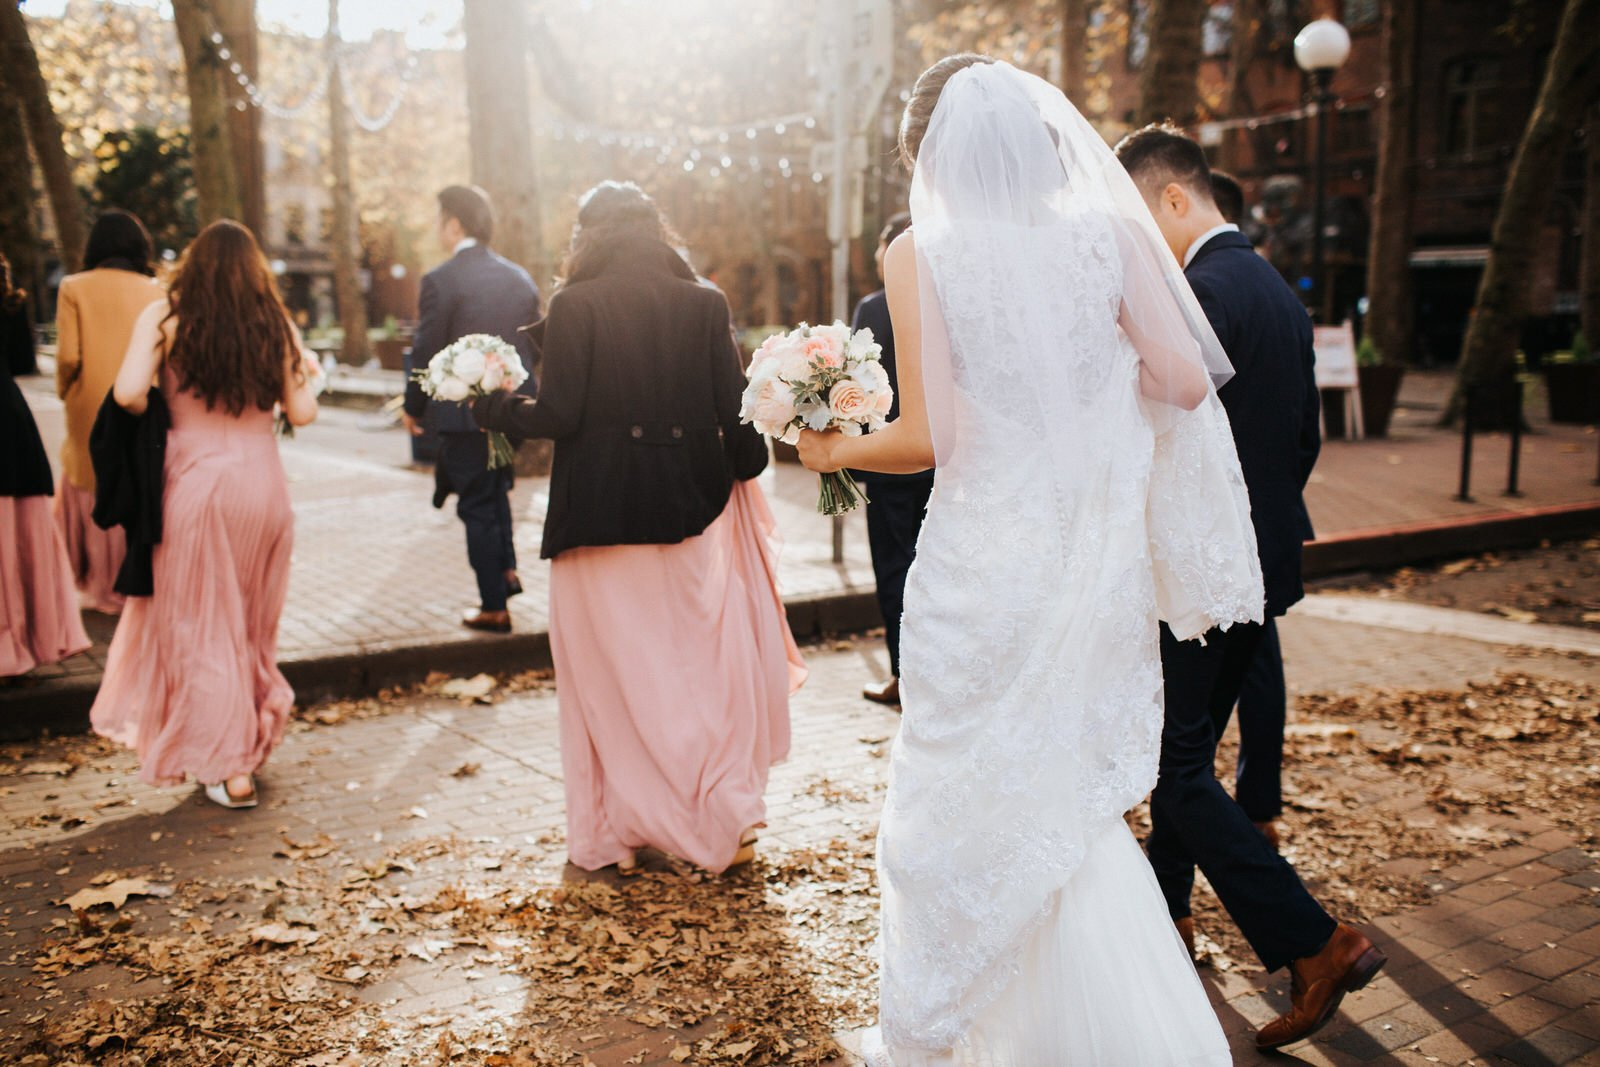 The wedding party walks into gorgeous light downtown seattle